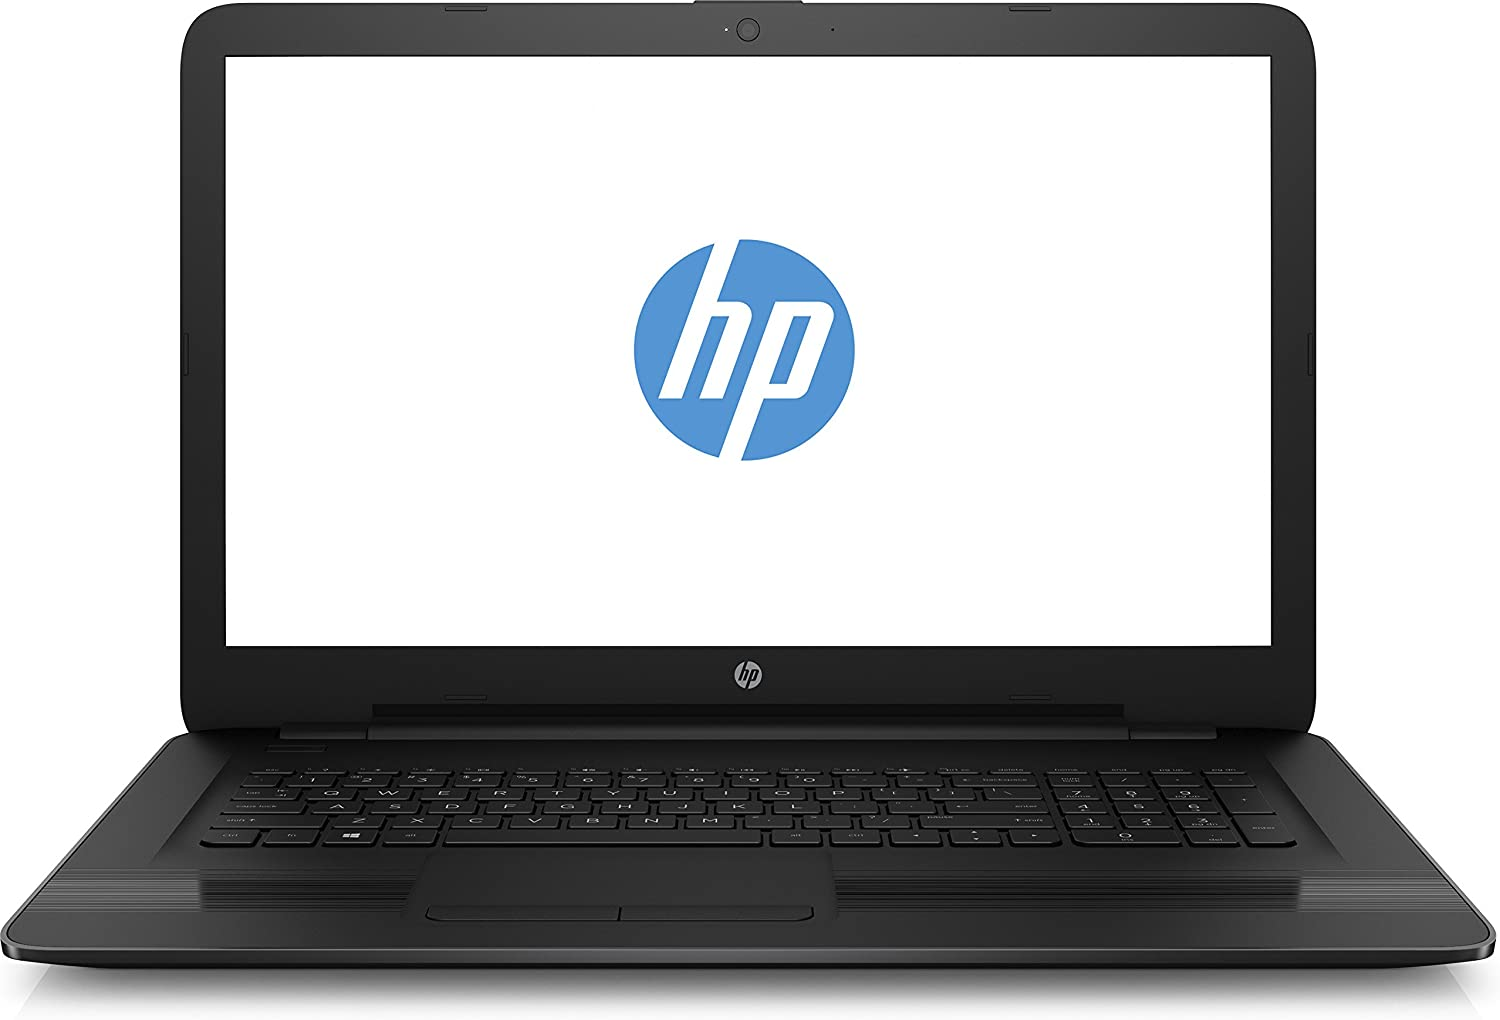 "HP 17-X114DX - 17.3"" HD+ - 7th Gen i5-7200U - 6GB Memory - 1TB Hard Drive - Black"